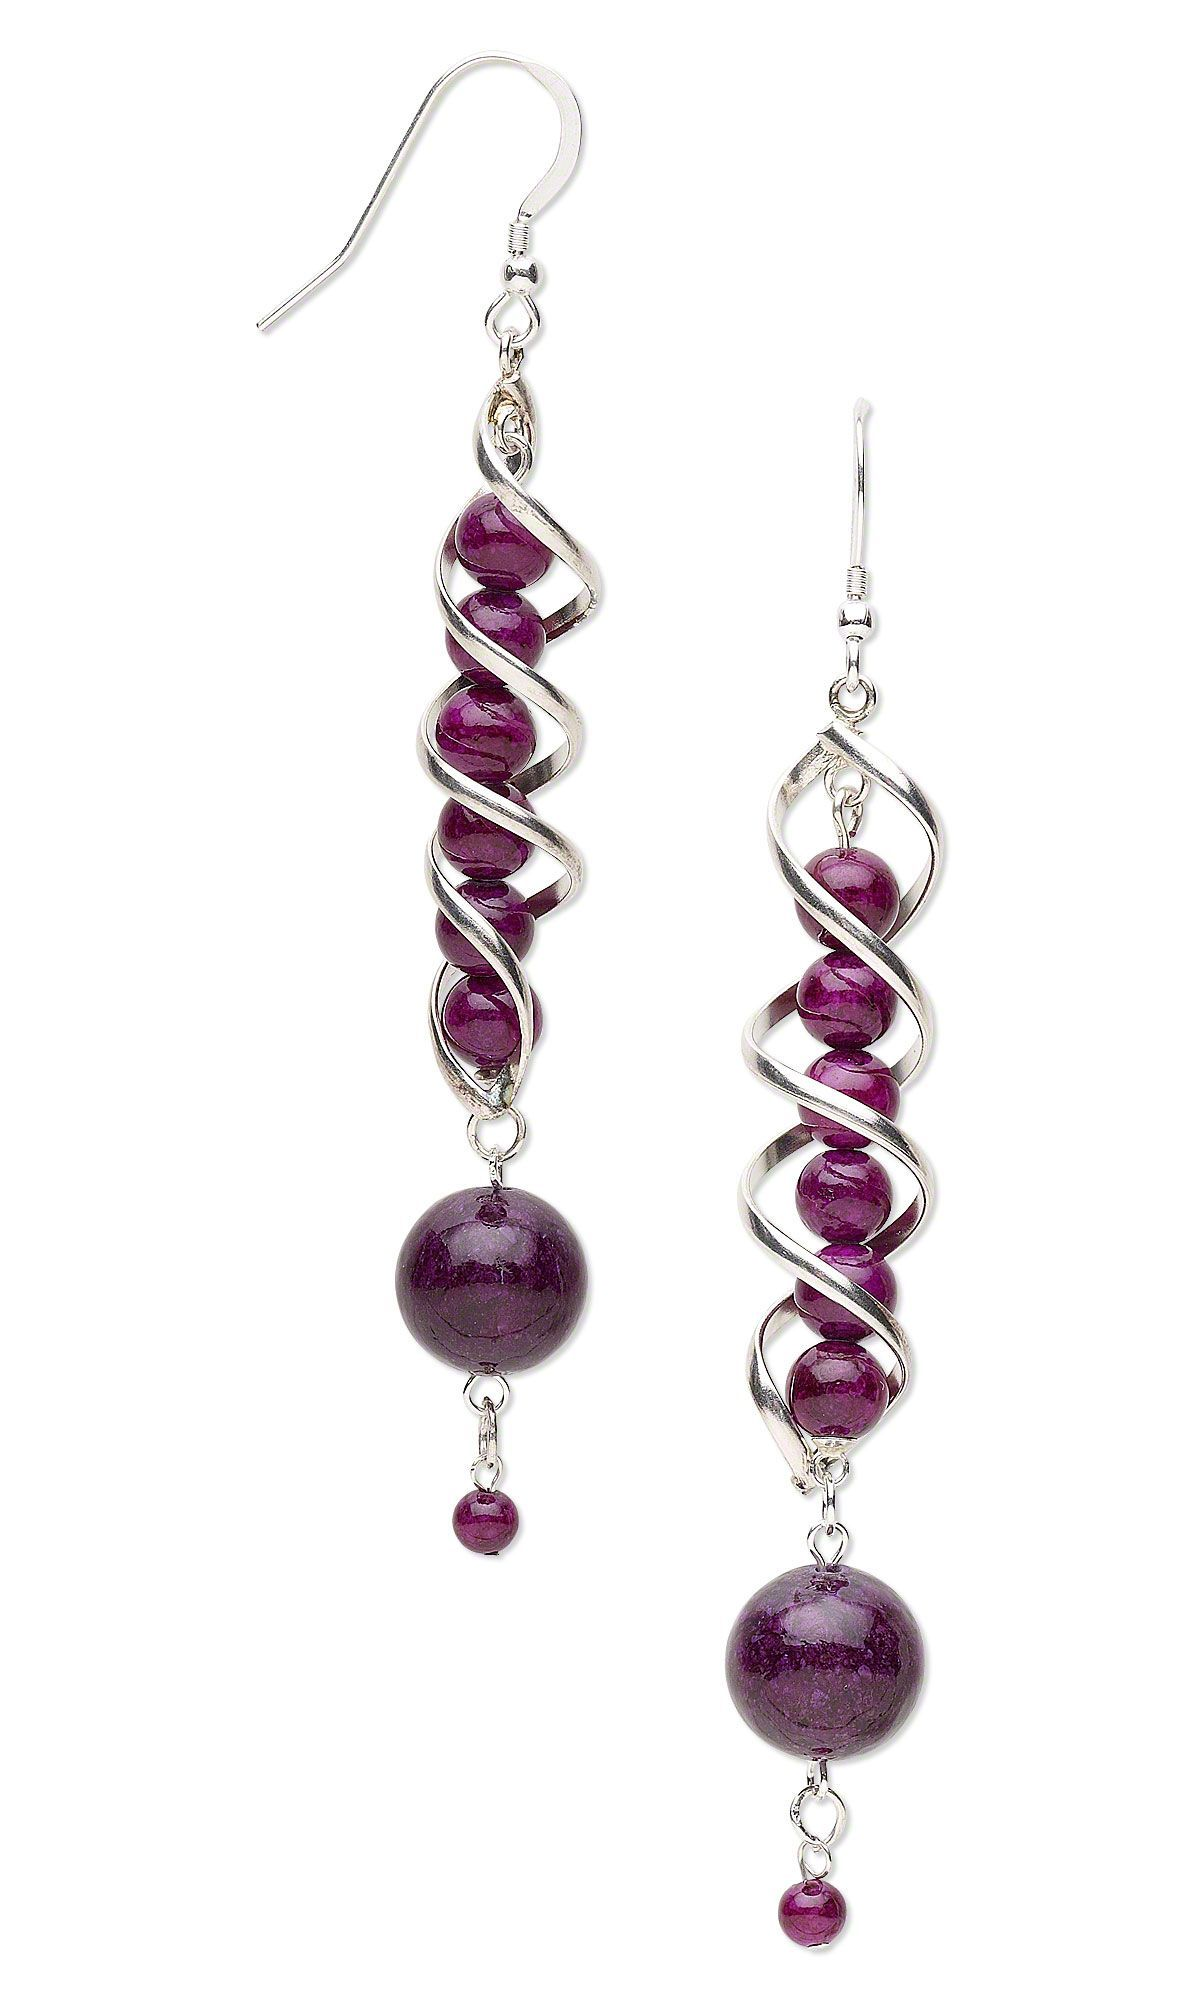 Jewelry Design - Earrings with Riverstone Gemstone Beads and ...